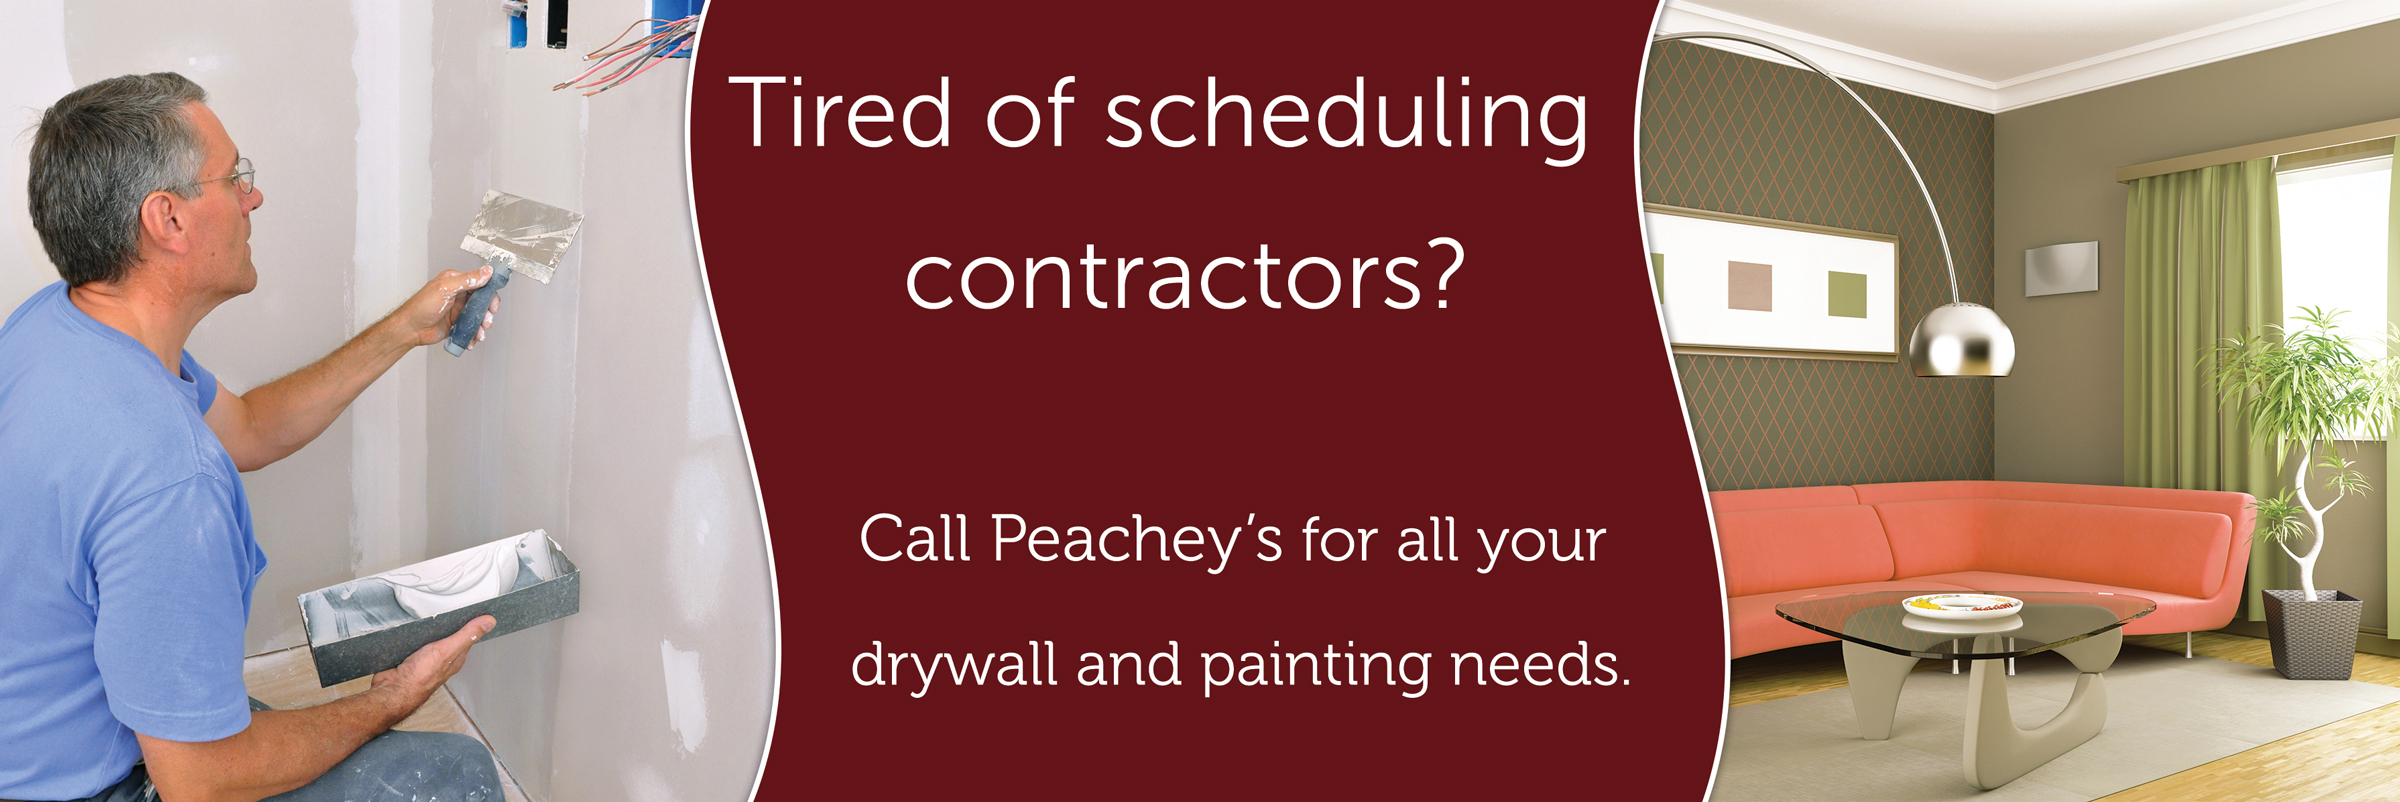 peachey's drywall and paint services